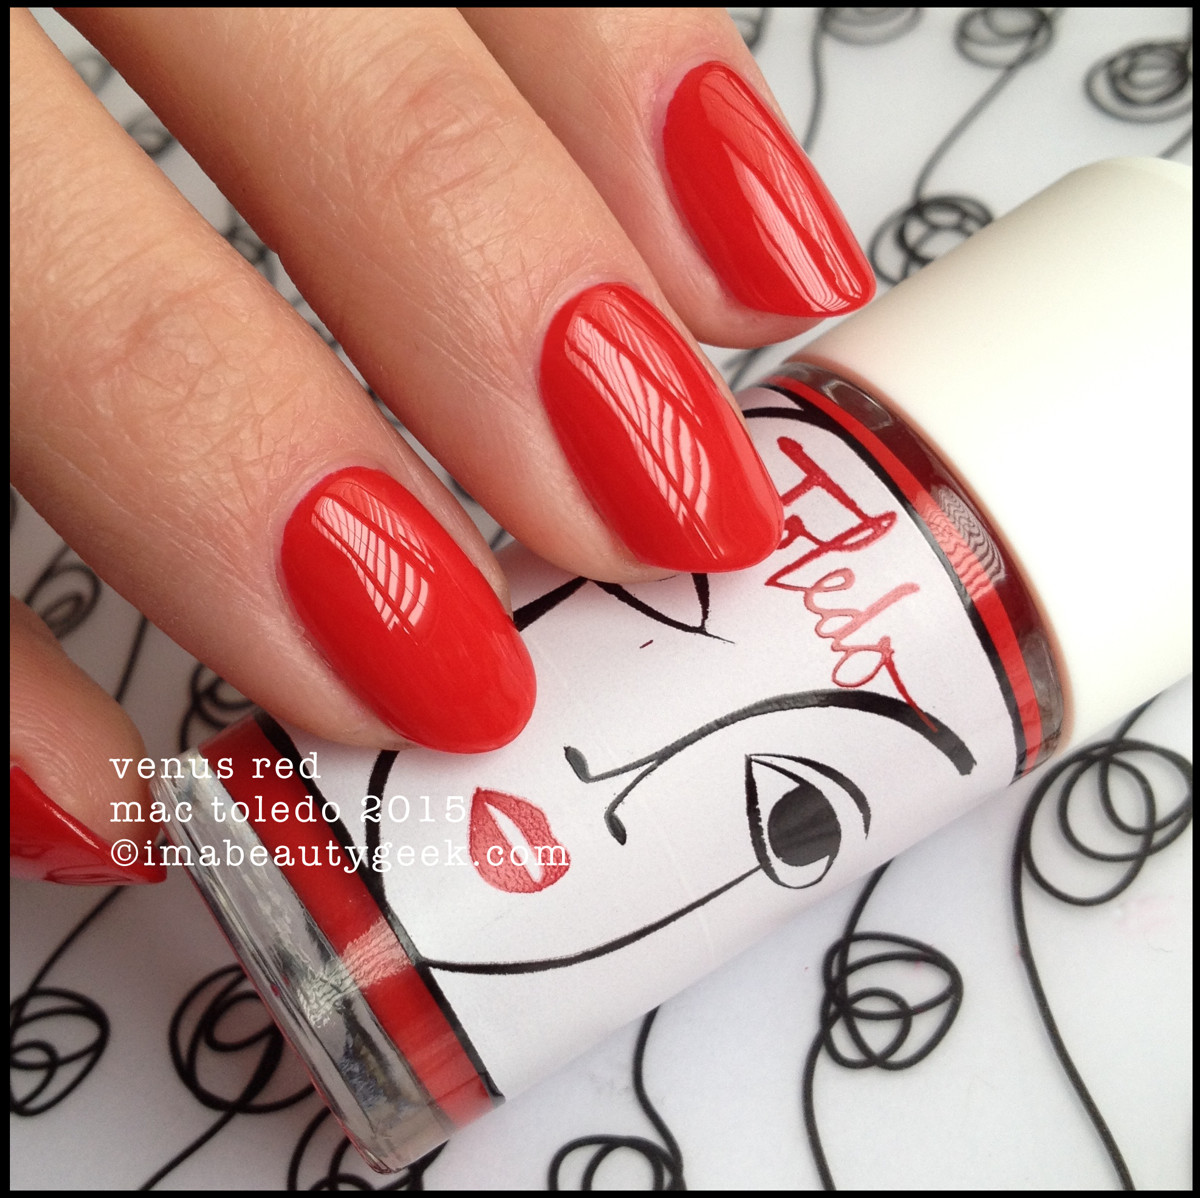 MAC Toledo Venus Red Nail Polish 2015